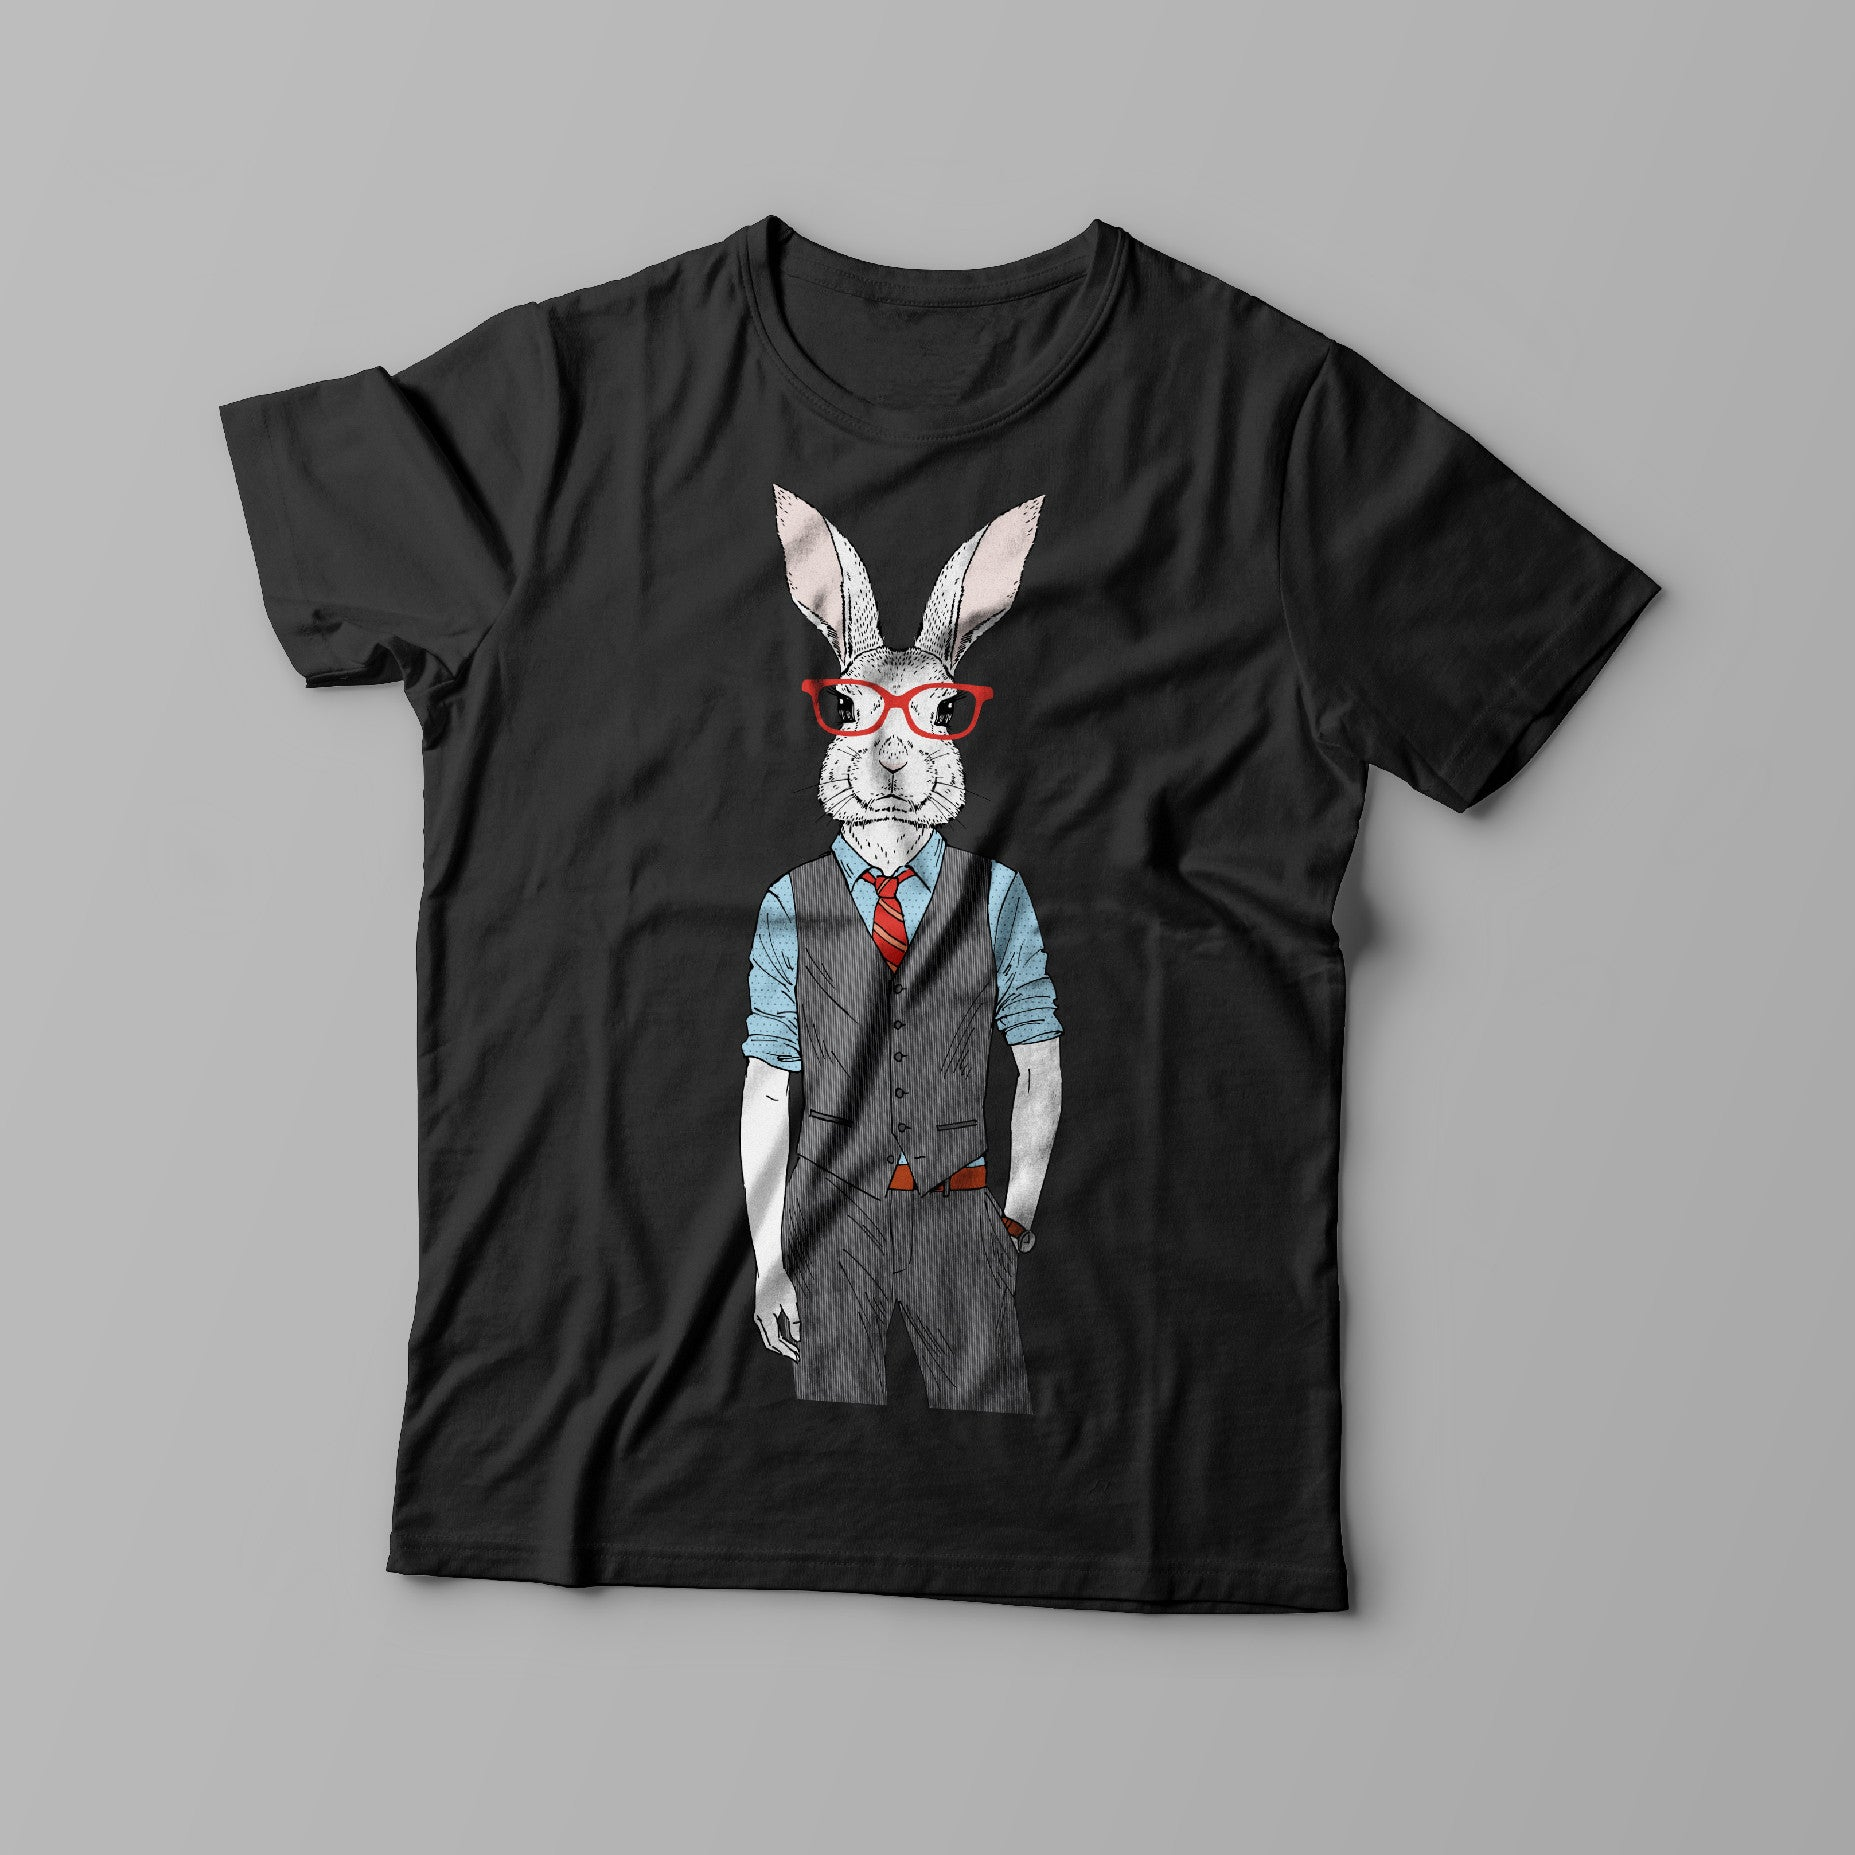 bunny design on front of black t-shirt